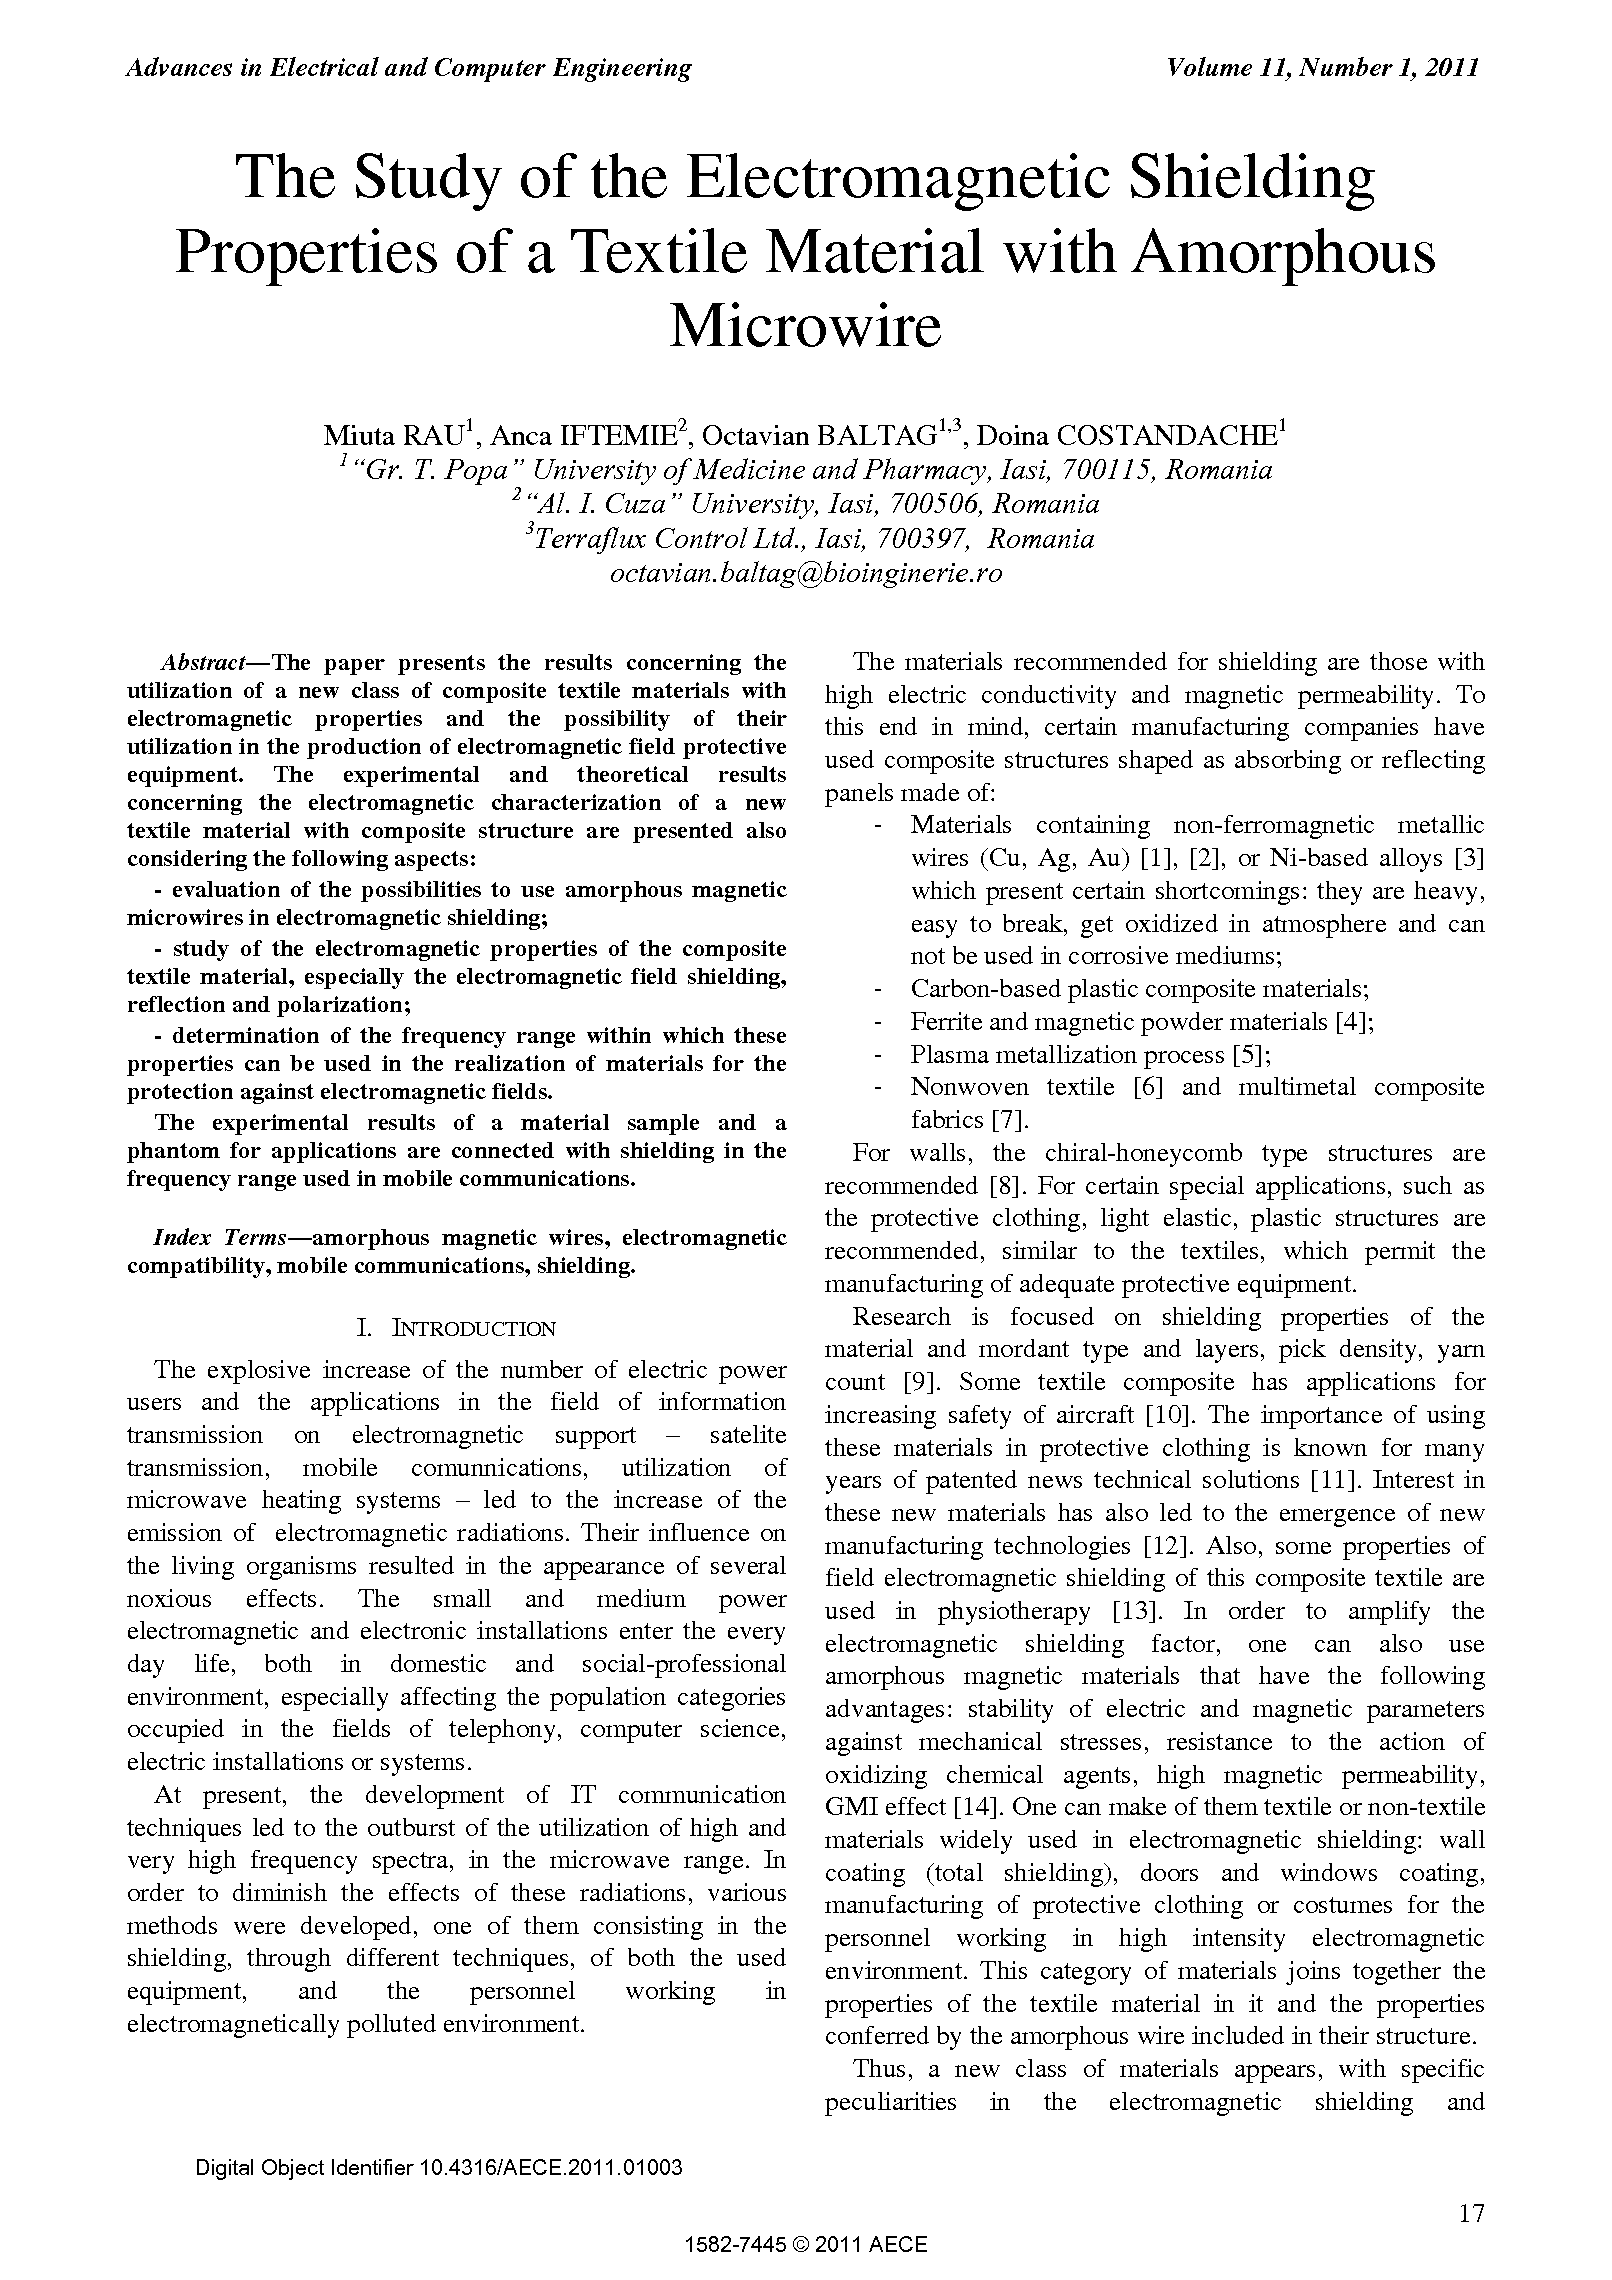 PDF Quickview for paper with DOI:10.4316/AECE.2011.01003